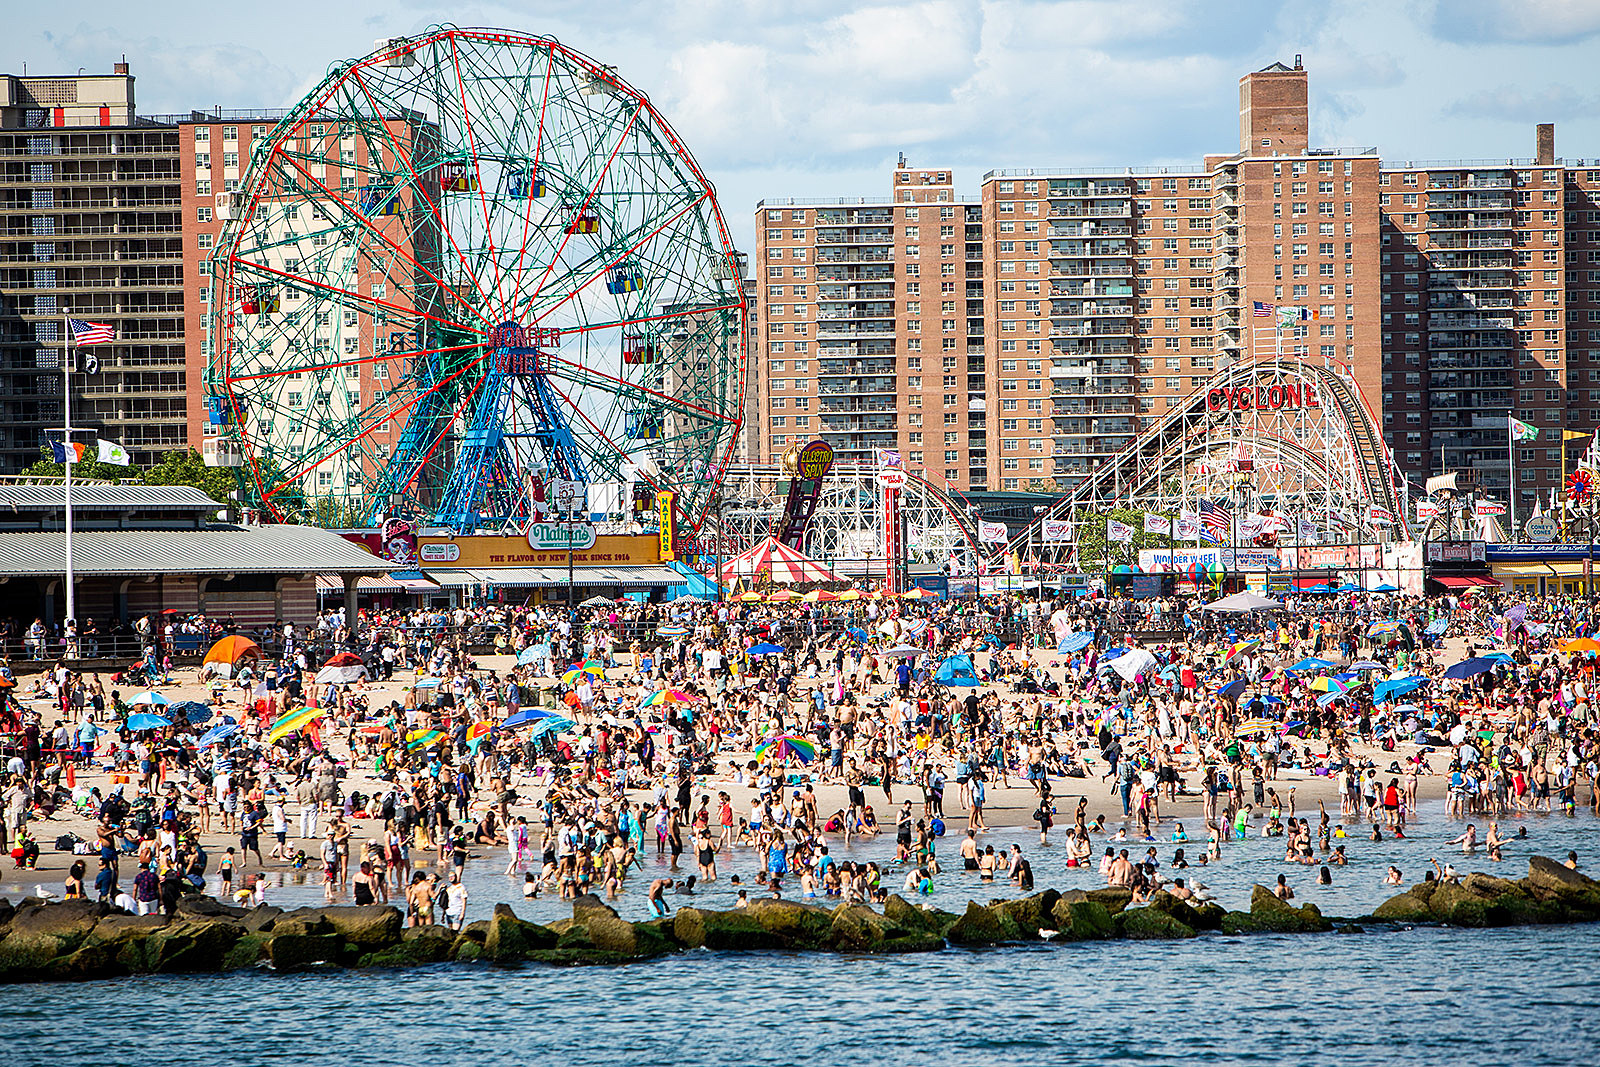 The 2019 Coney Island Mermaid Parade